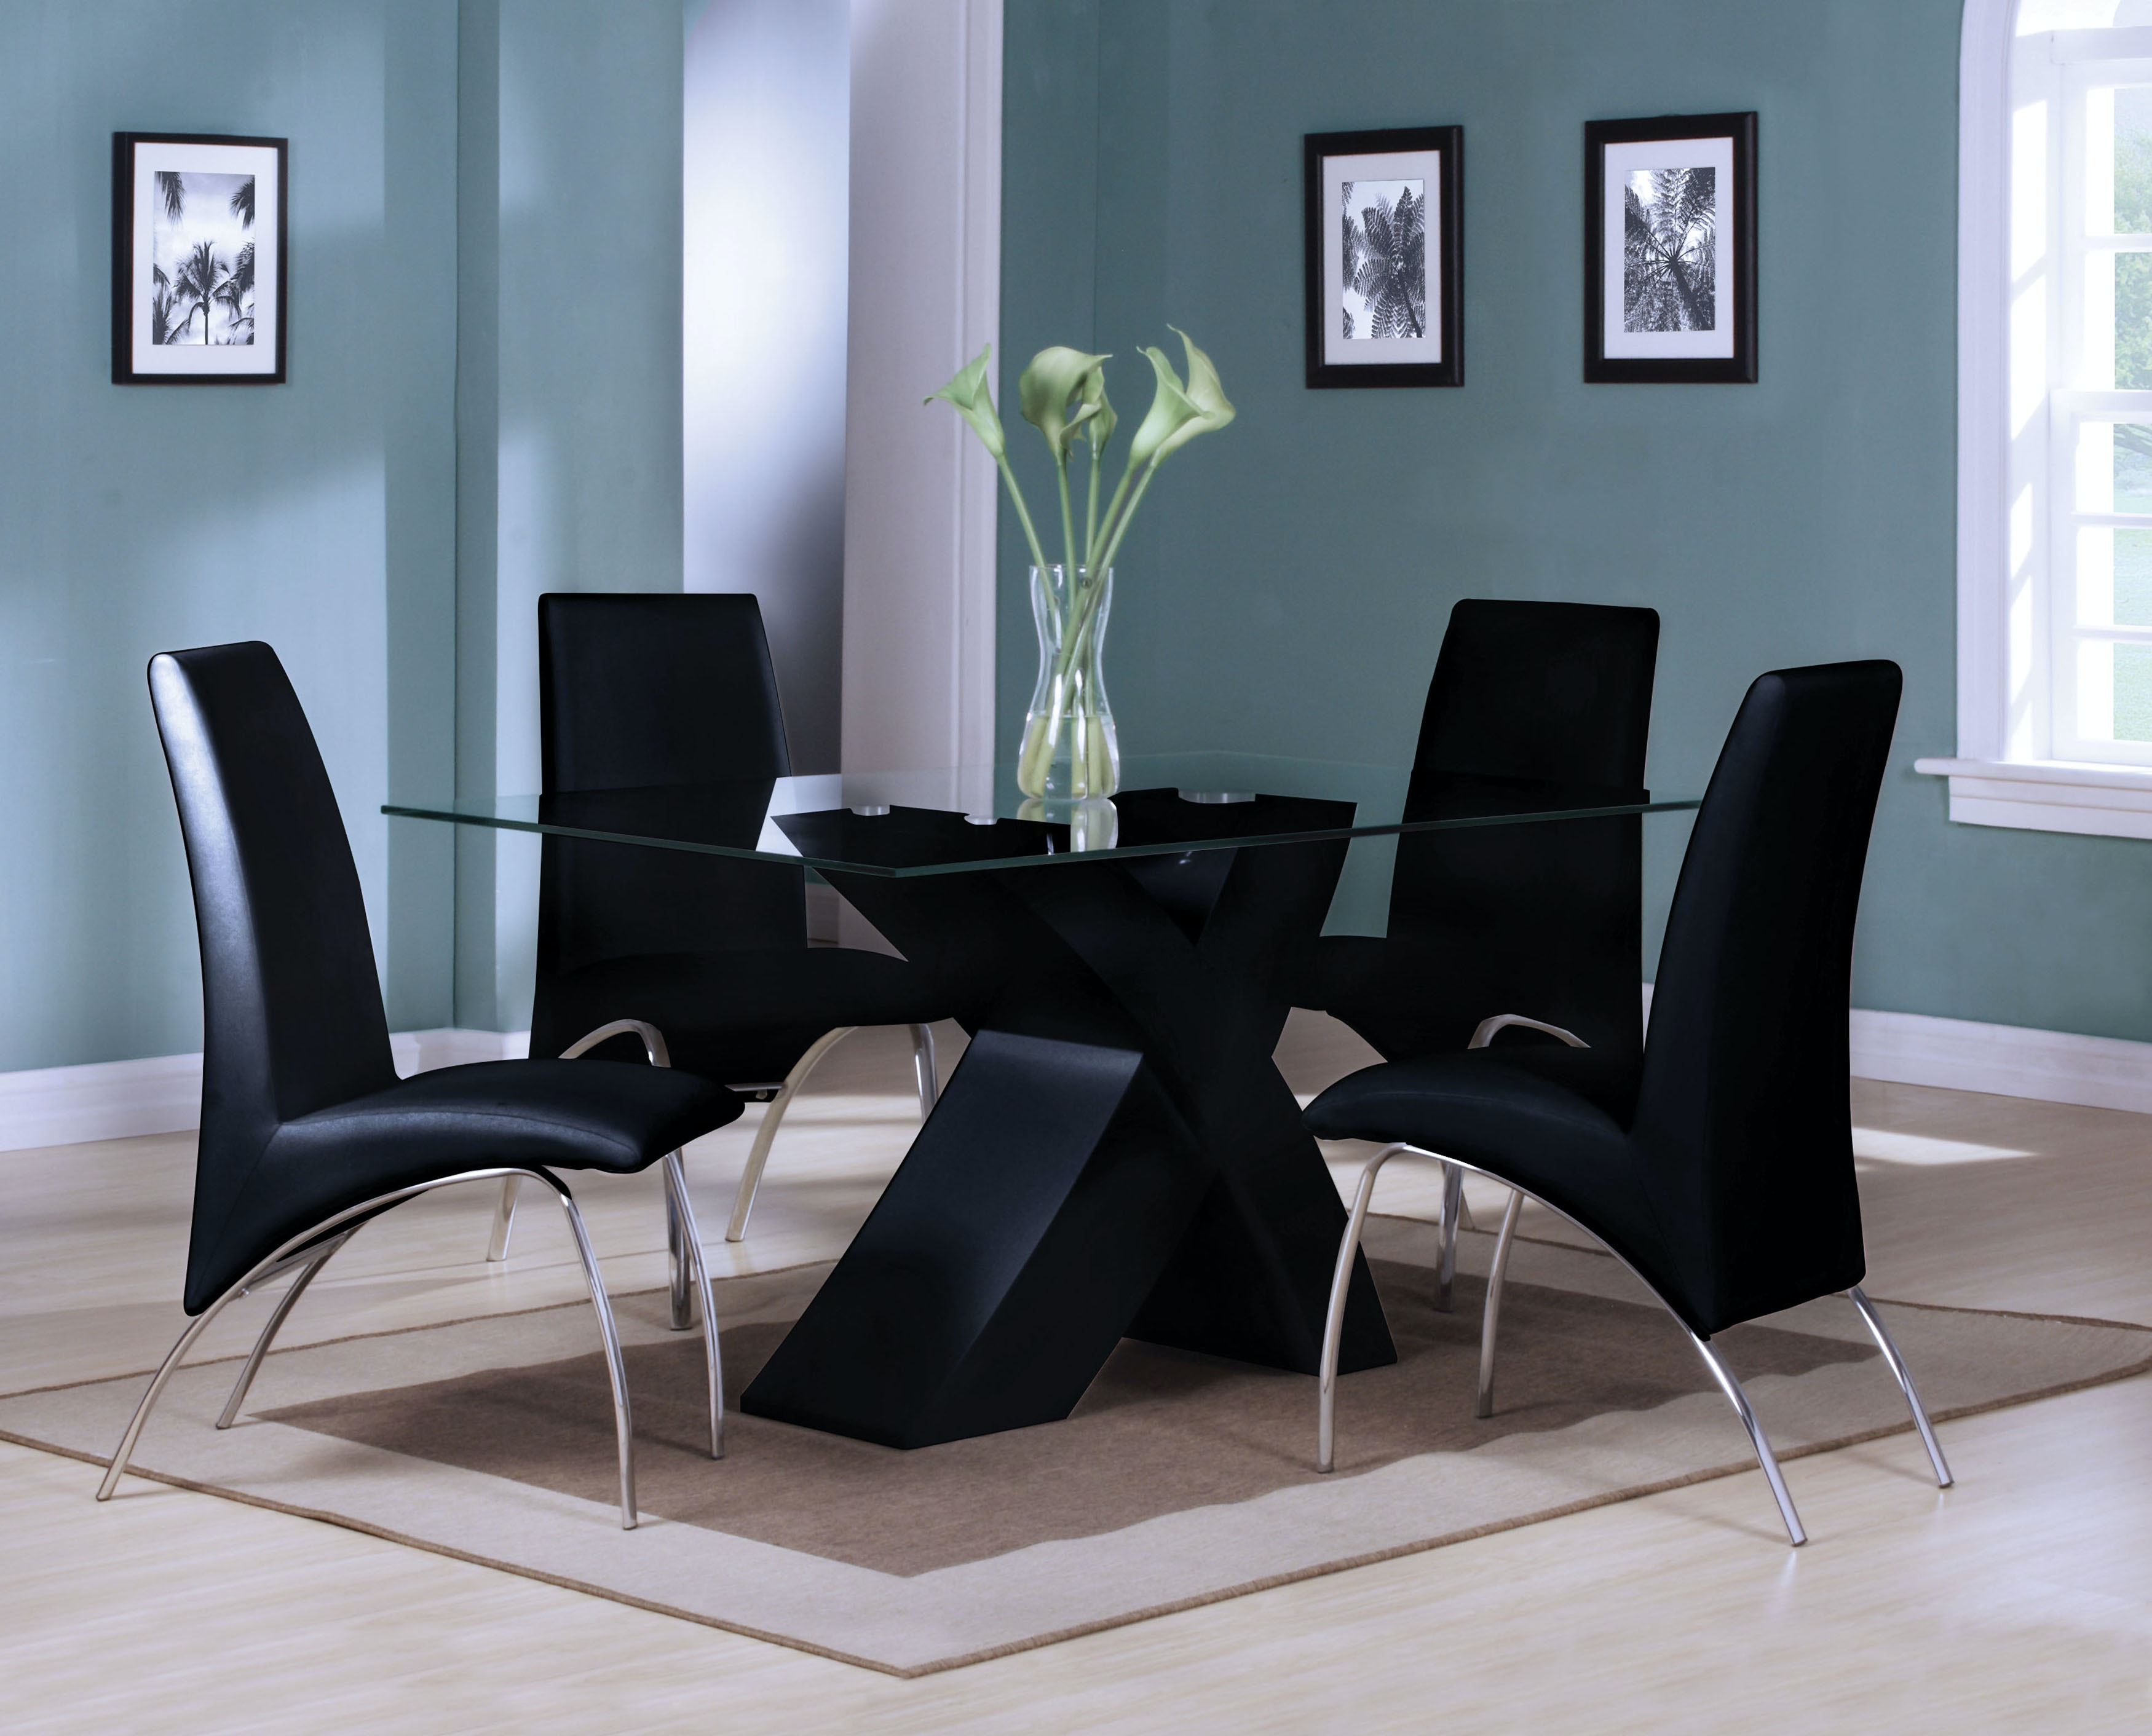 Exceptional Acme Furniture Dining Room Pervis Dining Table 71110   The Furniture Mall    Duluth, Doraville, Kennesaw And The Chamblee, GA